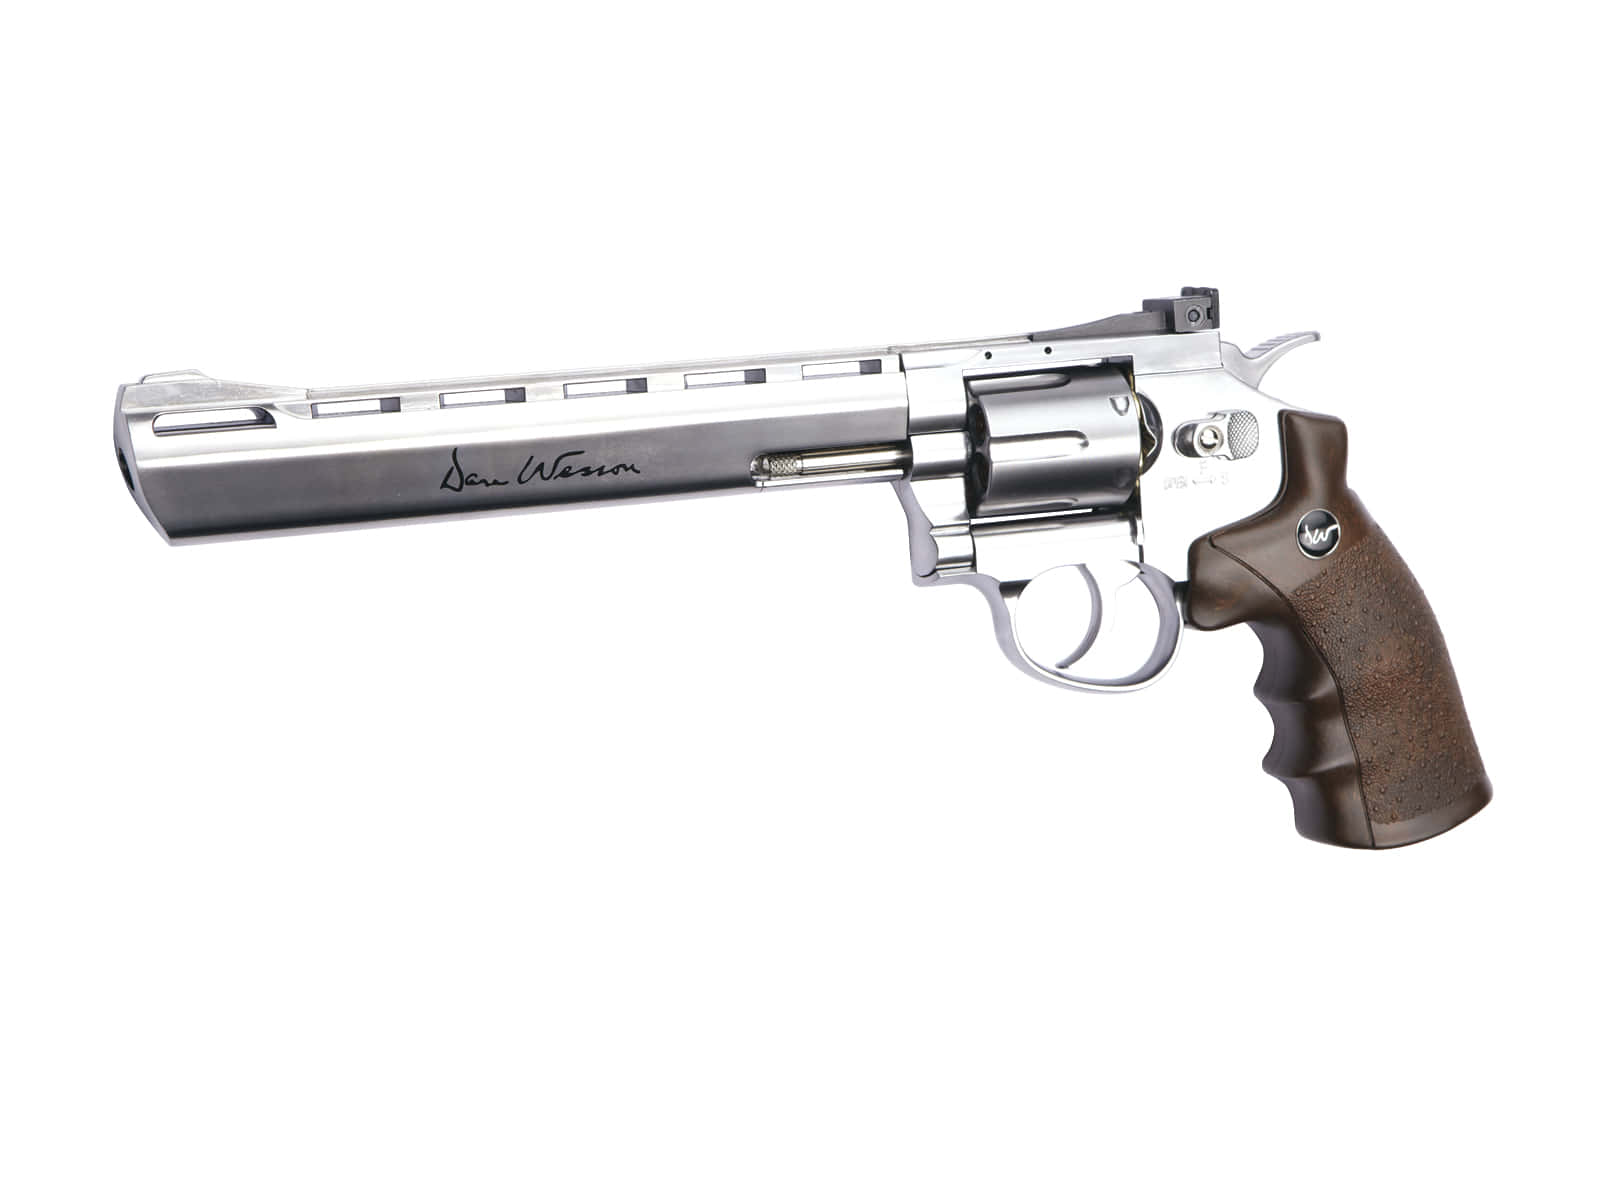 ACR603-Dan wesson silver 8'' Co2 bbs - ASG - ACR603